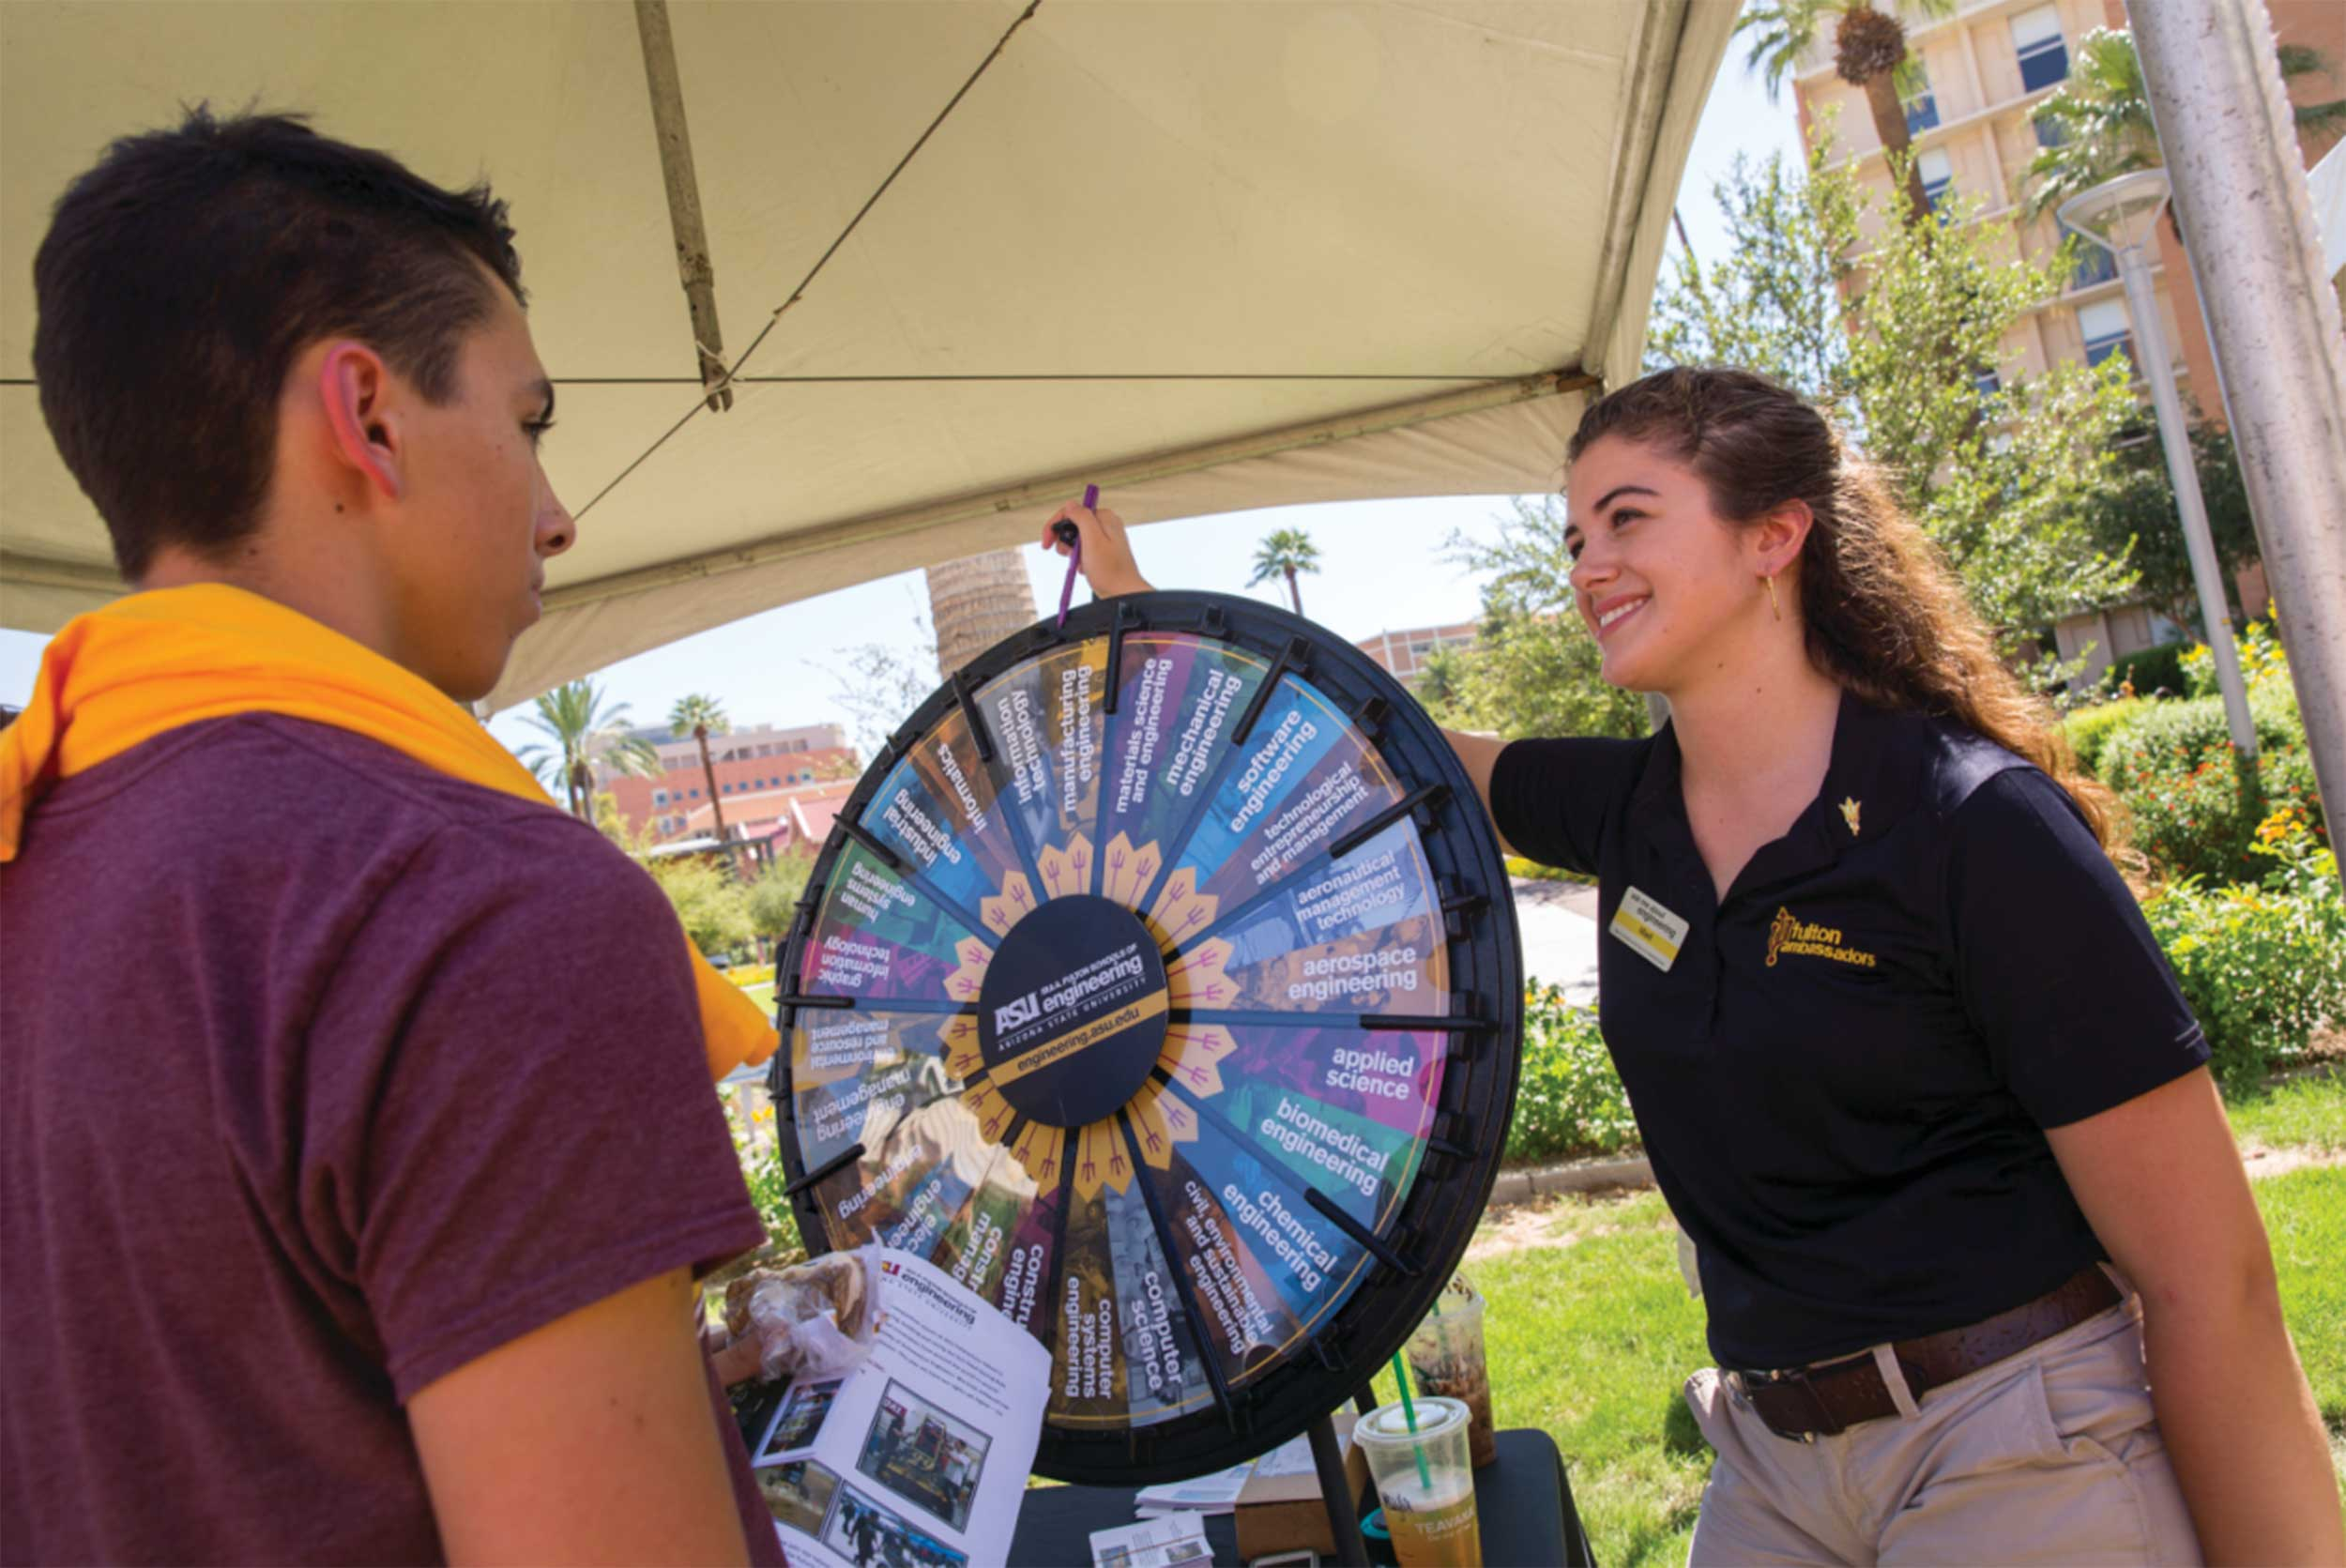 A Fulton Ambassador (right) shows the wheel of degrees to a student at the Fulton Schools Student Resource Fair